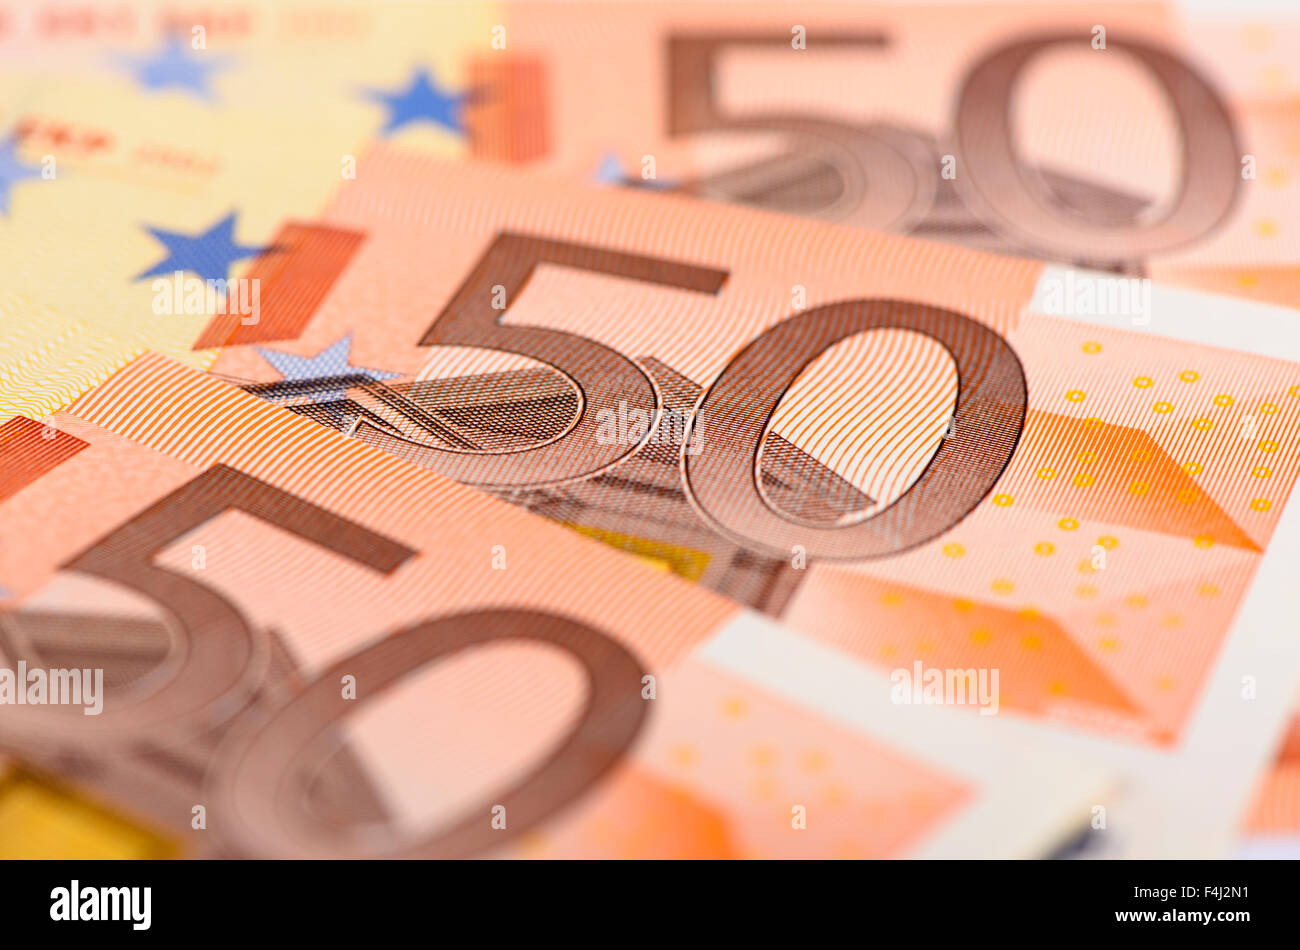 banknotes of euro currency - Stock Image